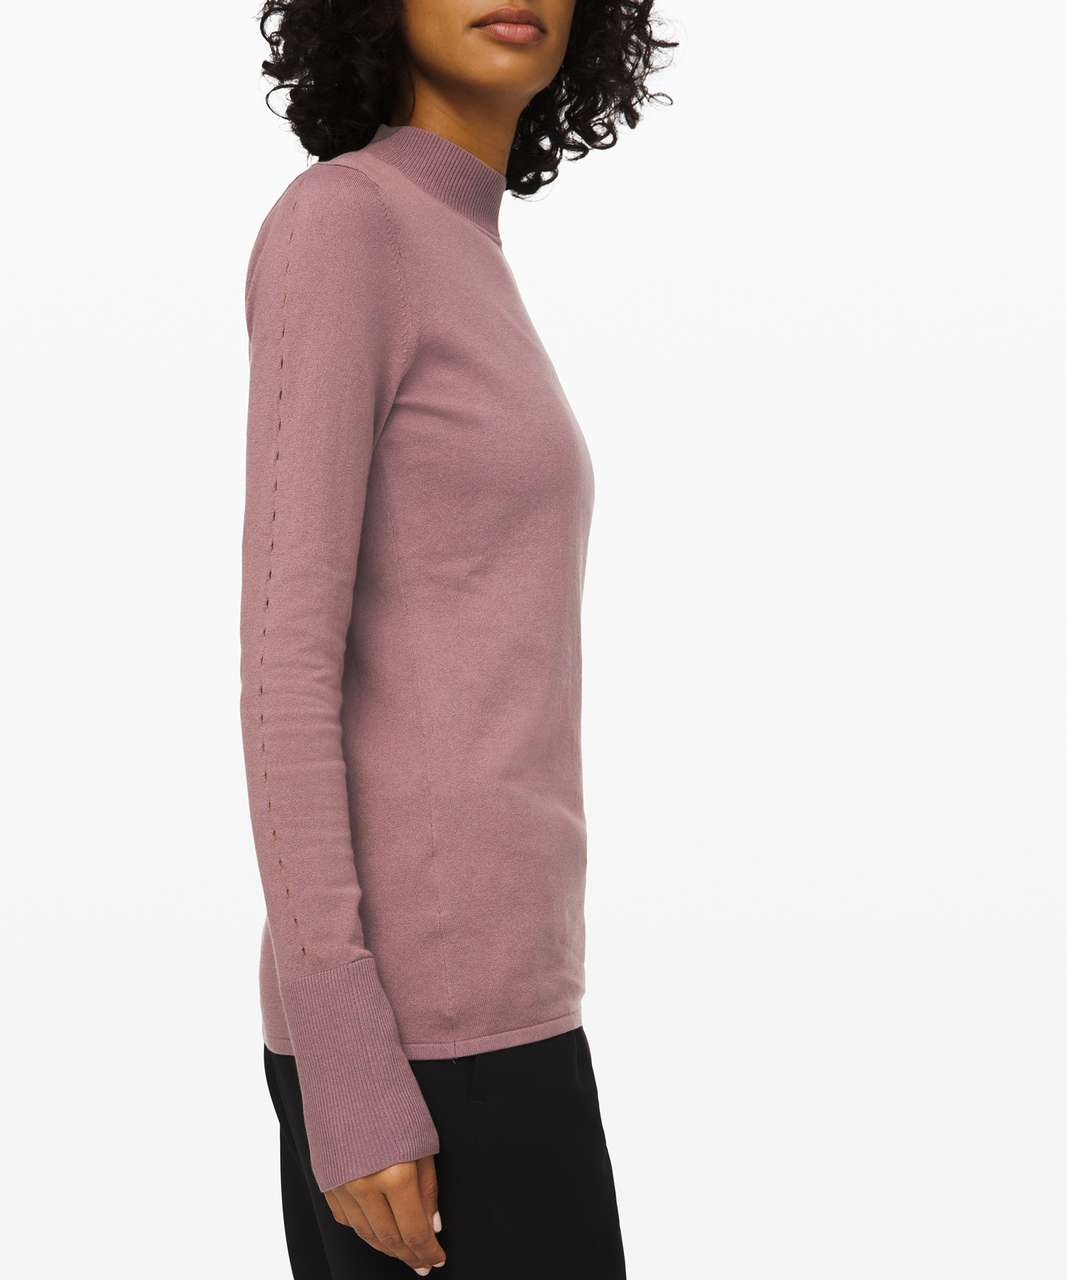 Lululemon Stand Steady Mock Neck Sweater - Misty Mocha